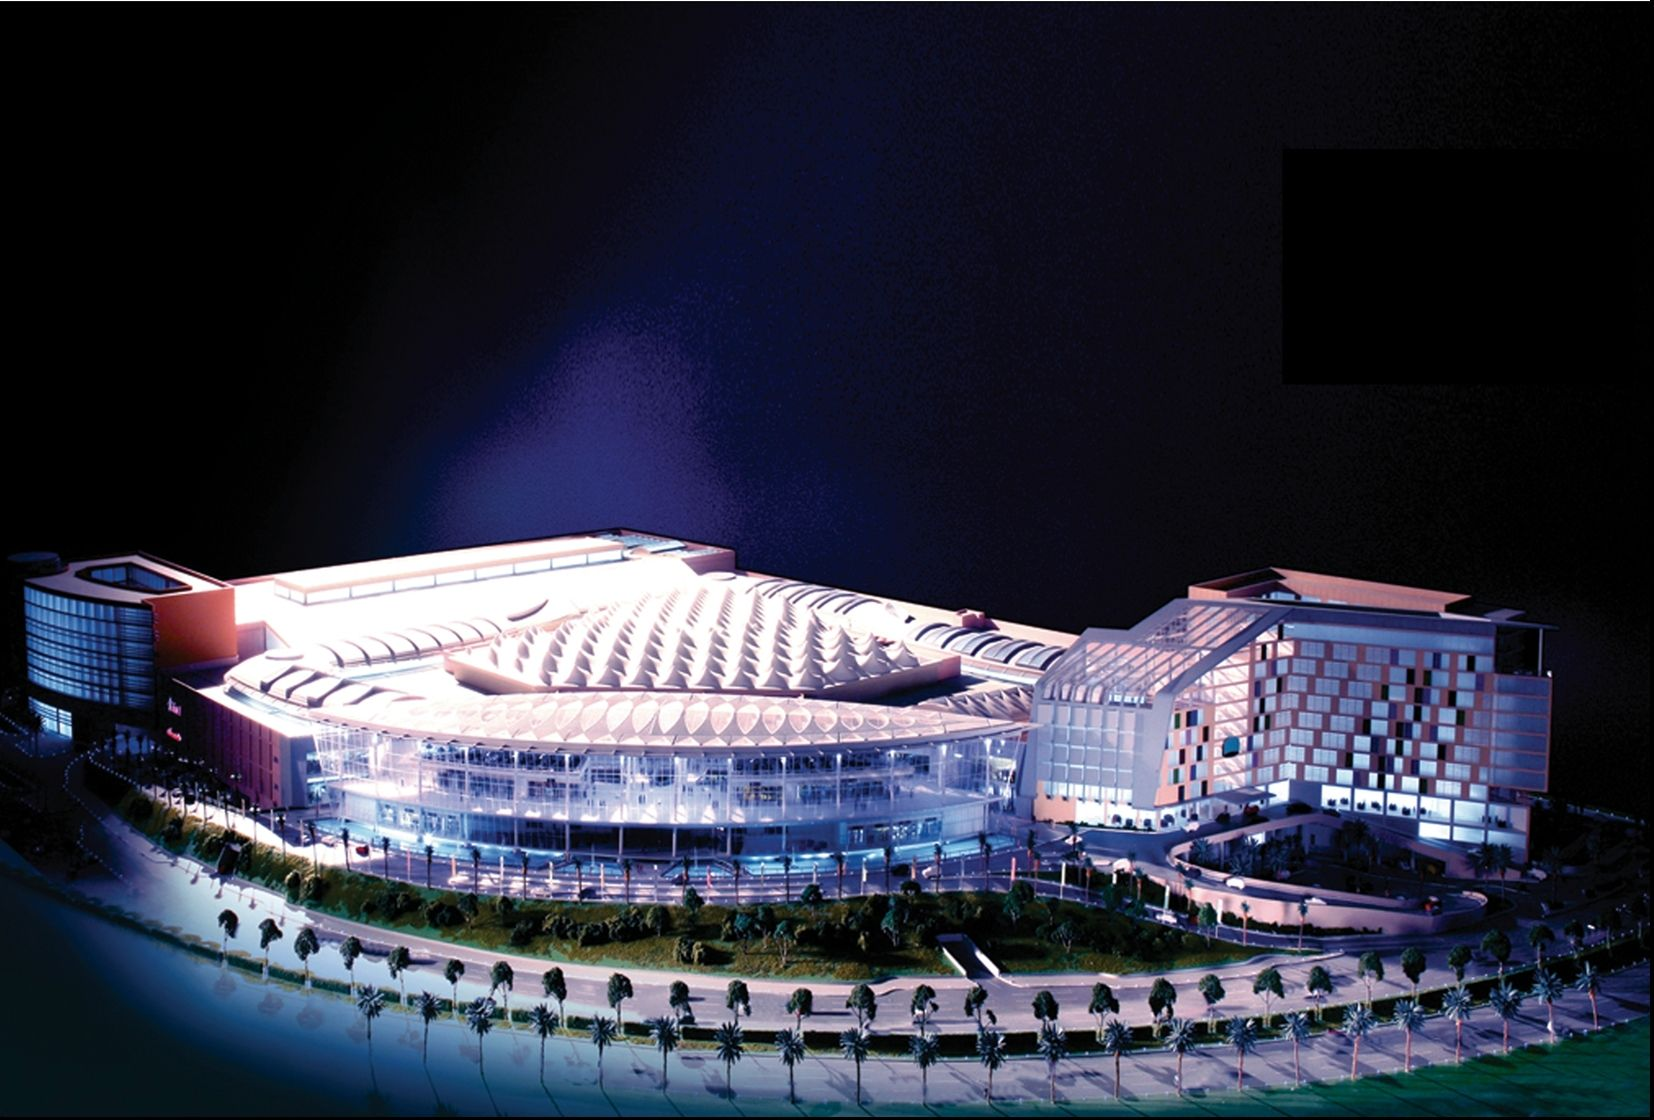 Mall Of Arabia Jeddah Saudi Arabia Jeddah Jeddah Saudi Arabia Places To Go